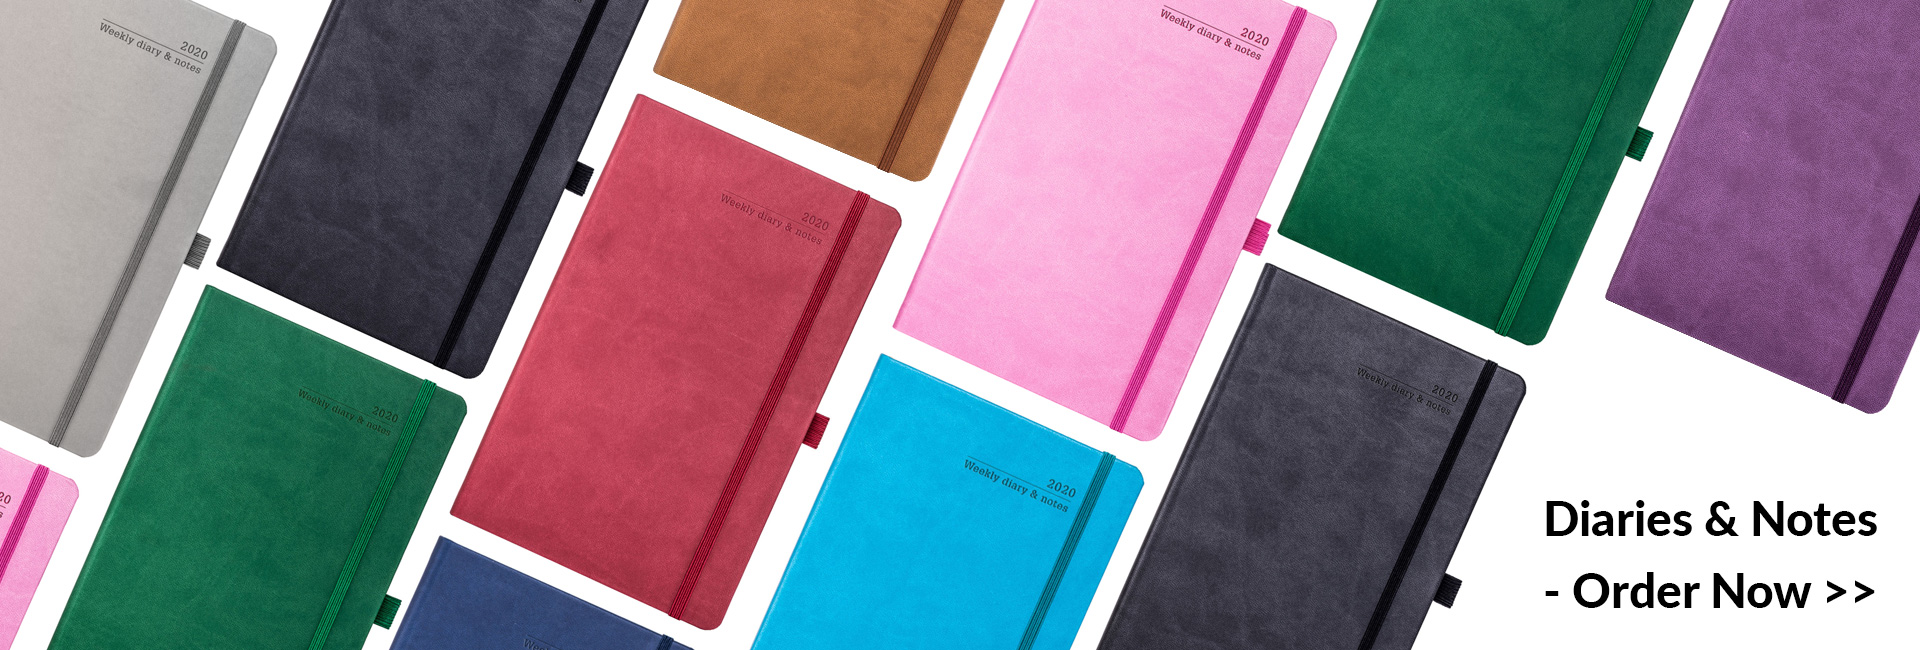 Castelli Diary and Notes 2019